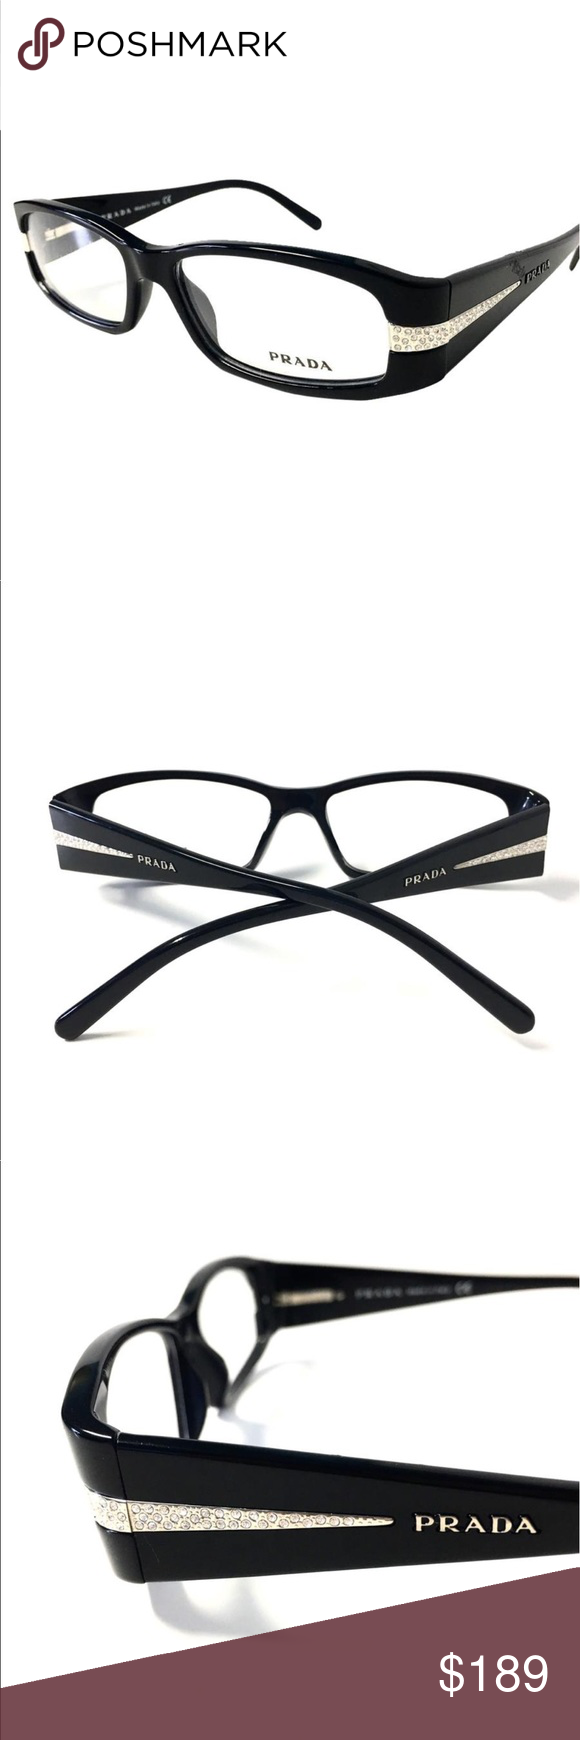 3115e022278f Prada Eyeglasses Black Frame with Crystals Prada Eyeglasses Black Frame  with Crystals    Hard to find-Discontinued Model    Without Tags.